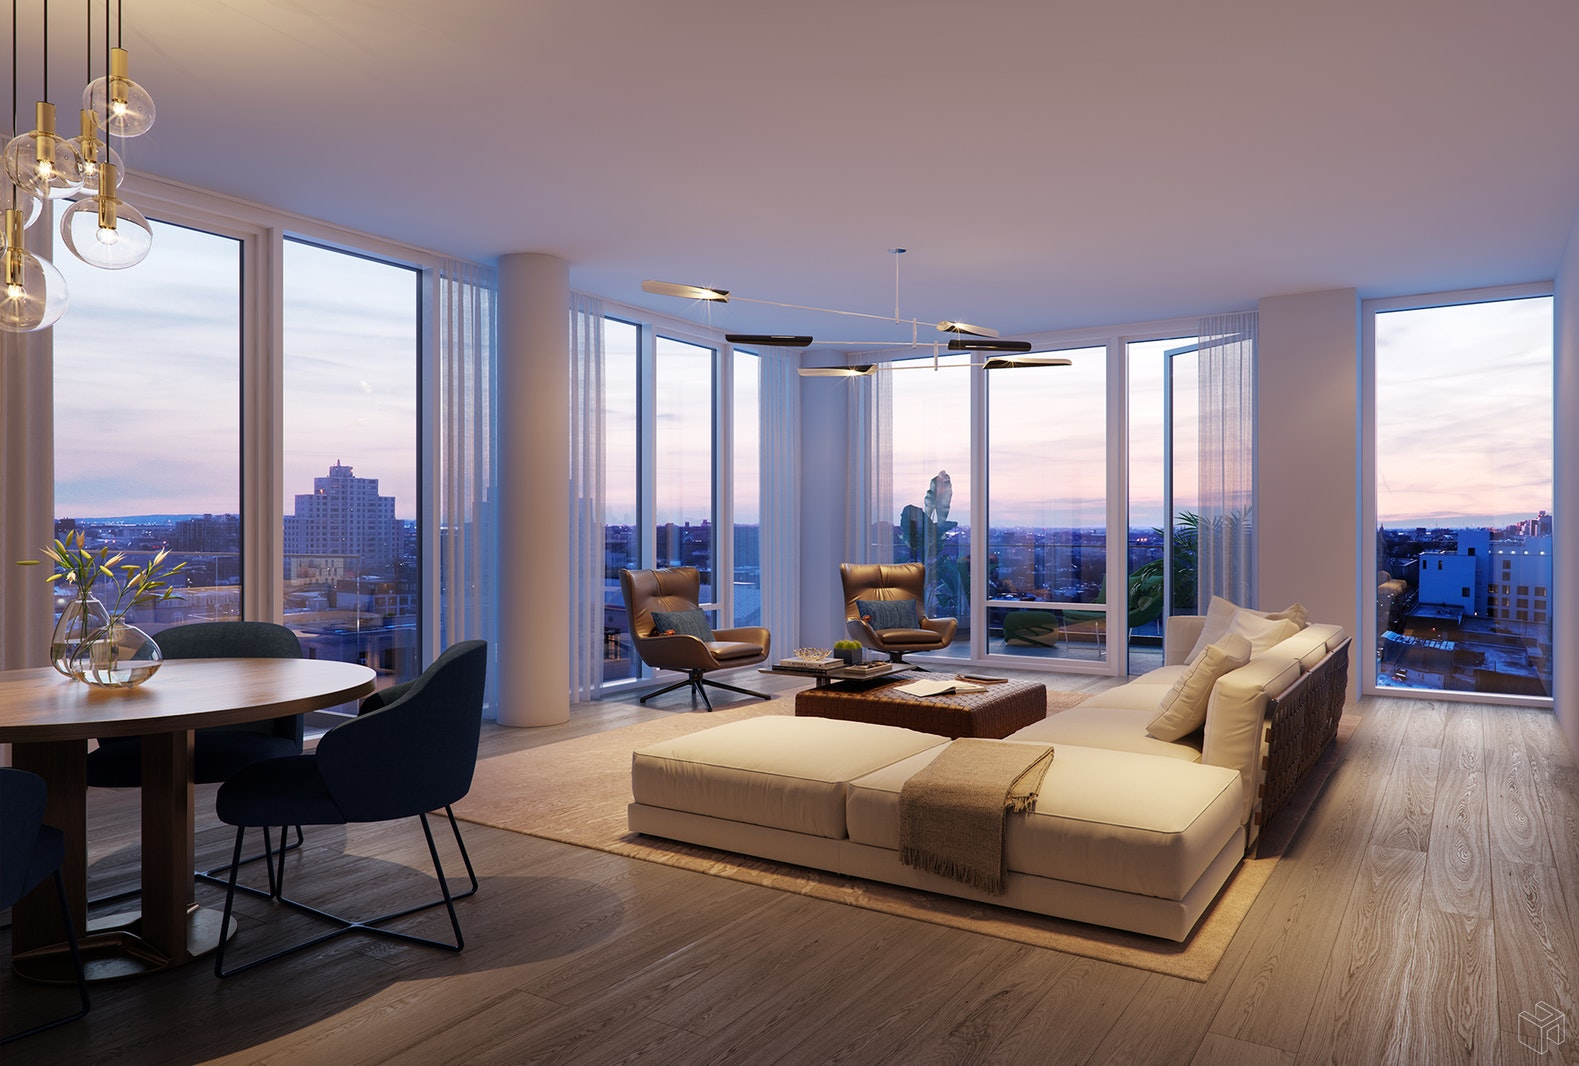 561 Pacific Street 1002, Boerum Hill, Brooklyn, NY, 11217, $1,925,000, Property For Sale, Halstead Real Estate, Photo 2